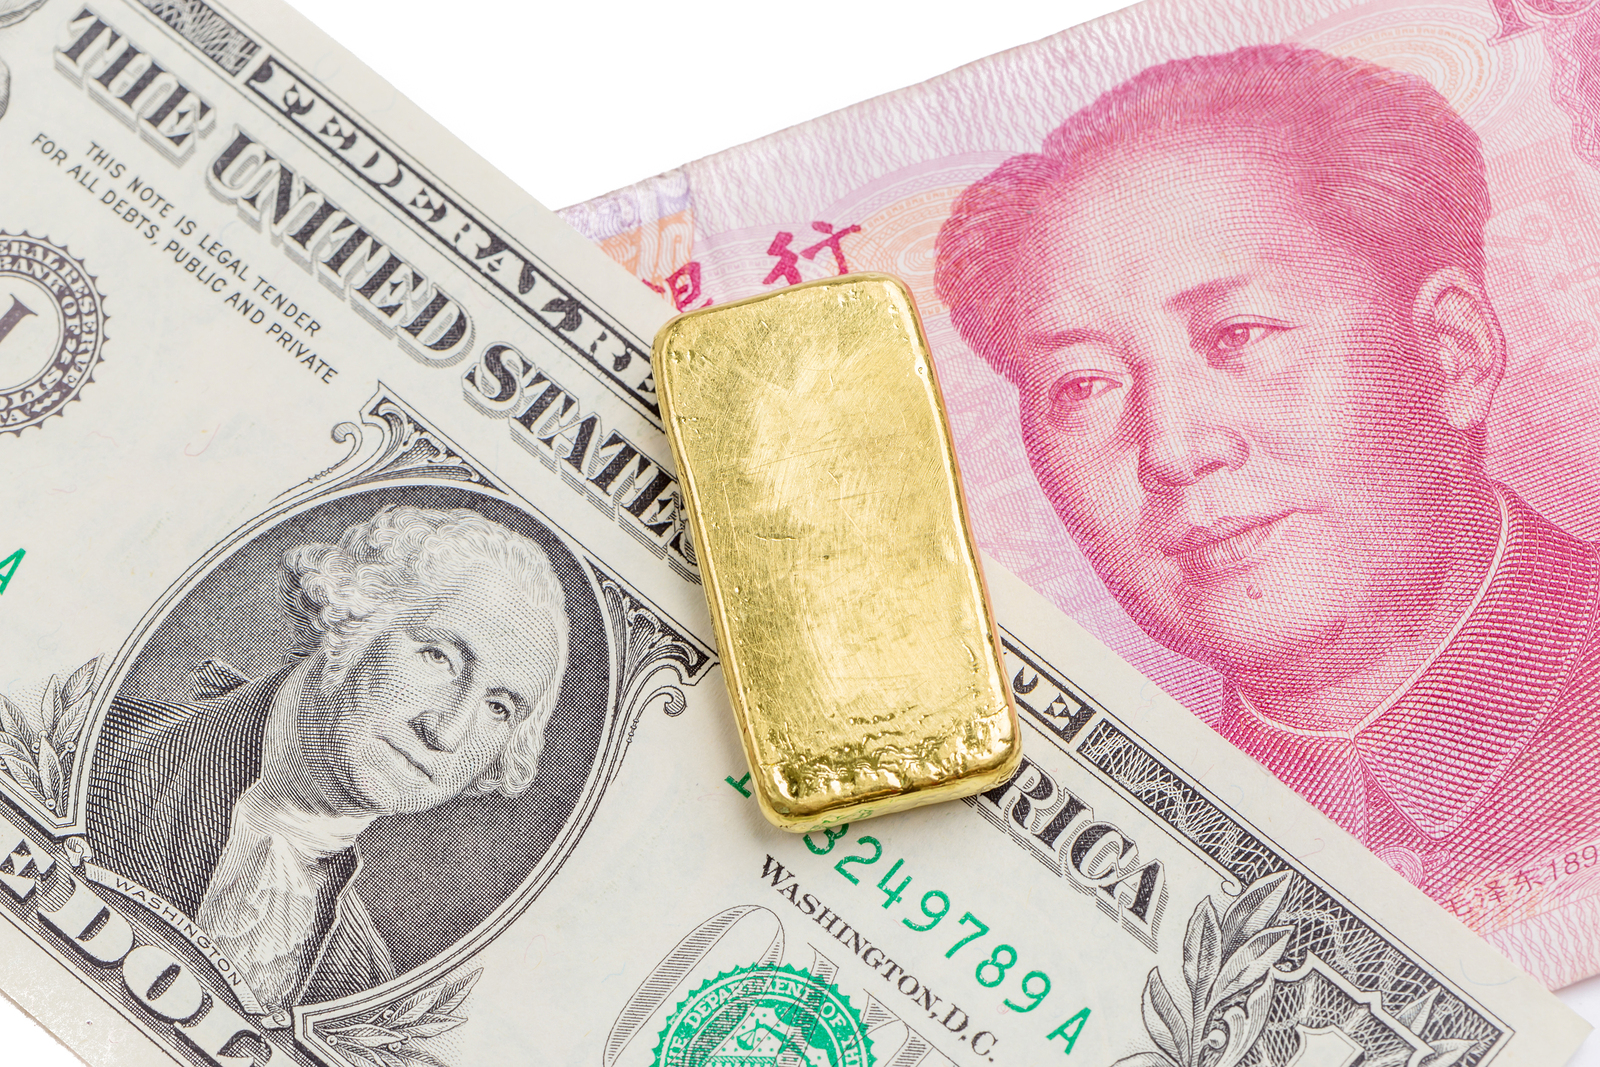 Dollar and Chinese banknote with gold bar